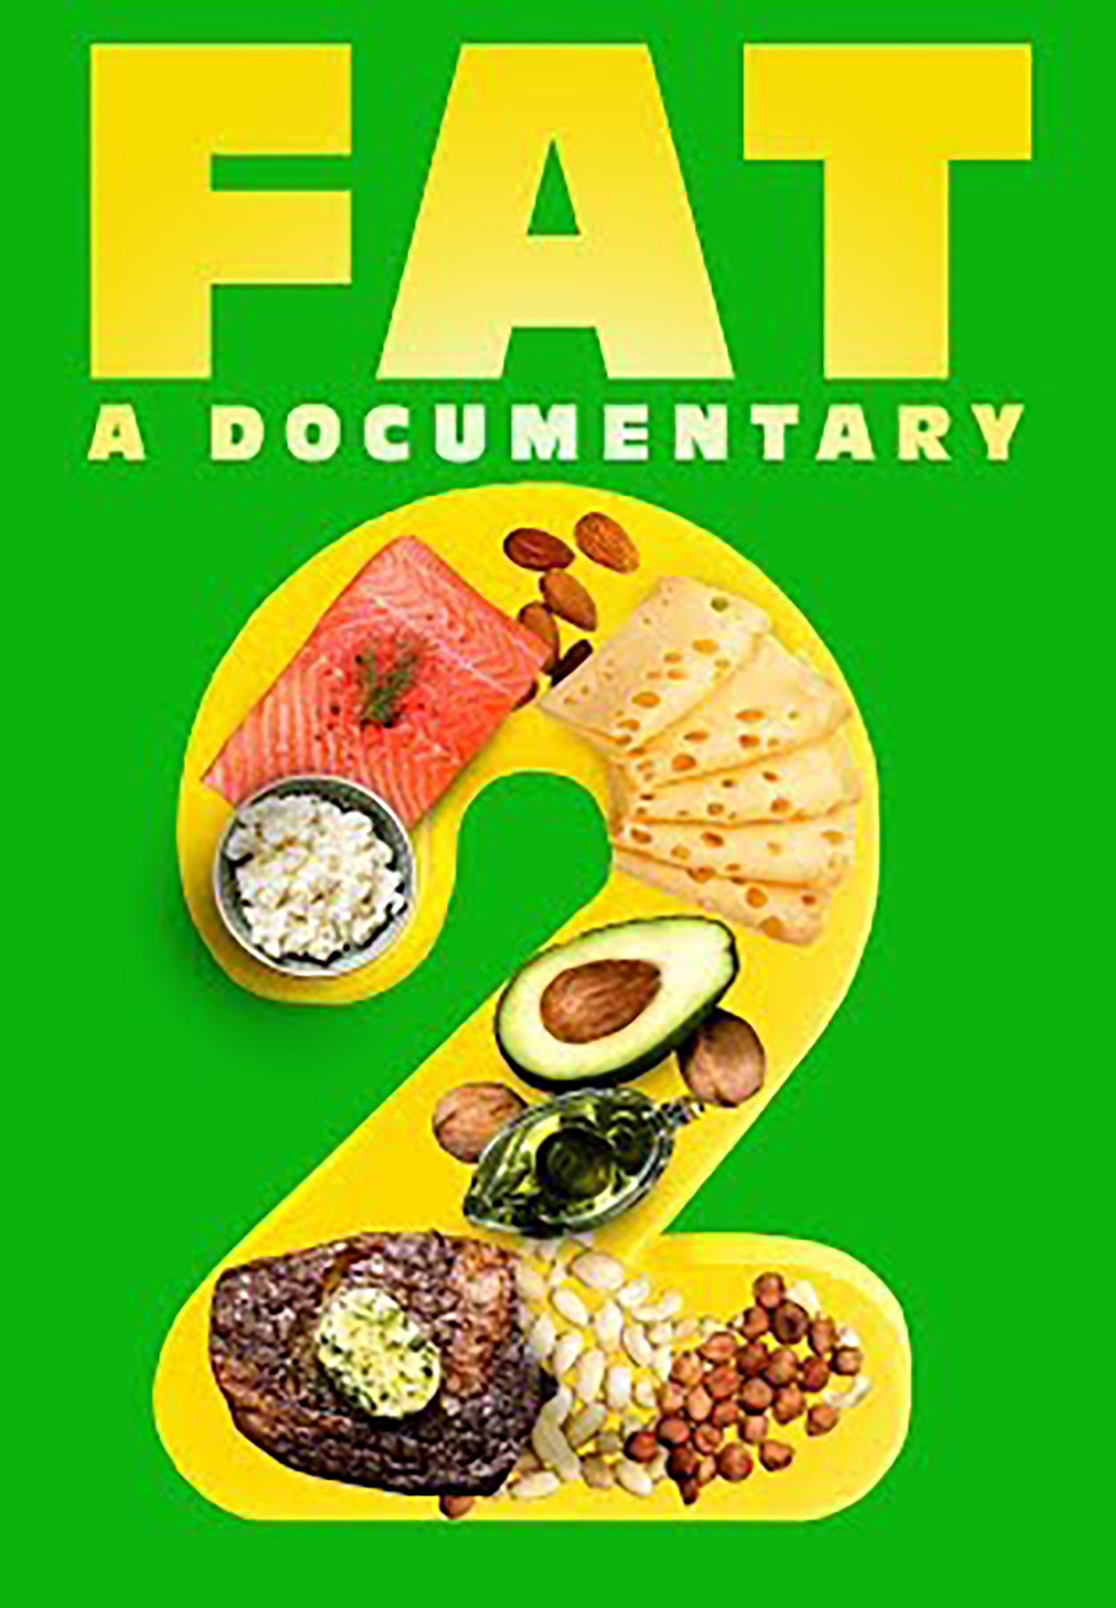 Fat: A Documentary 2 2021 - SEE21